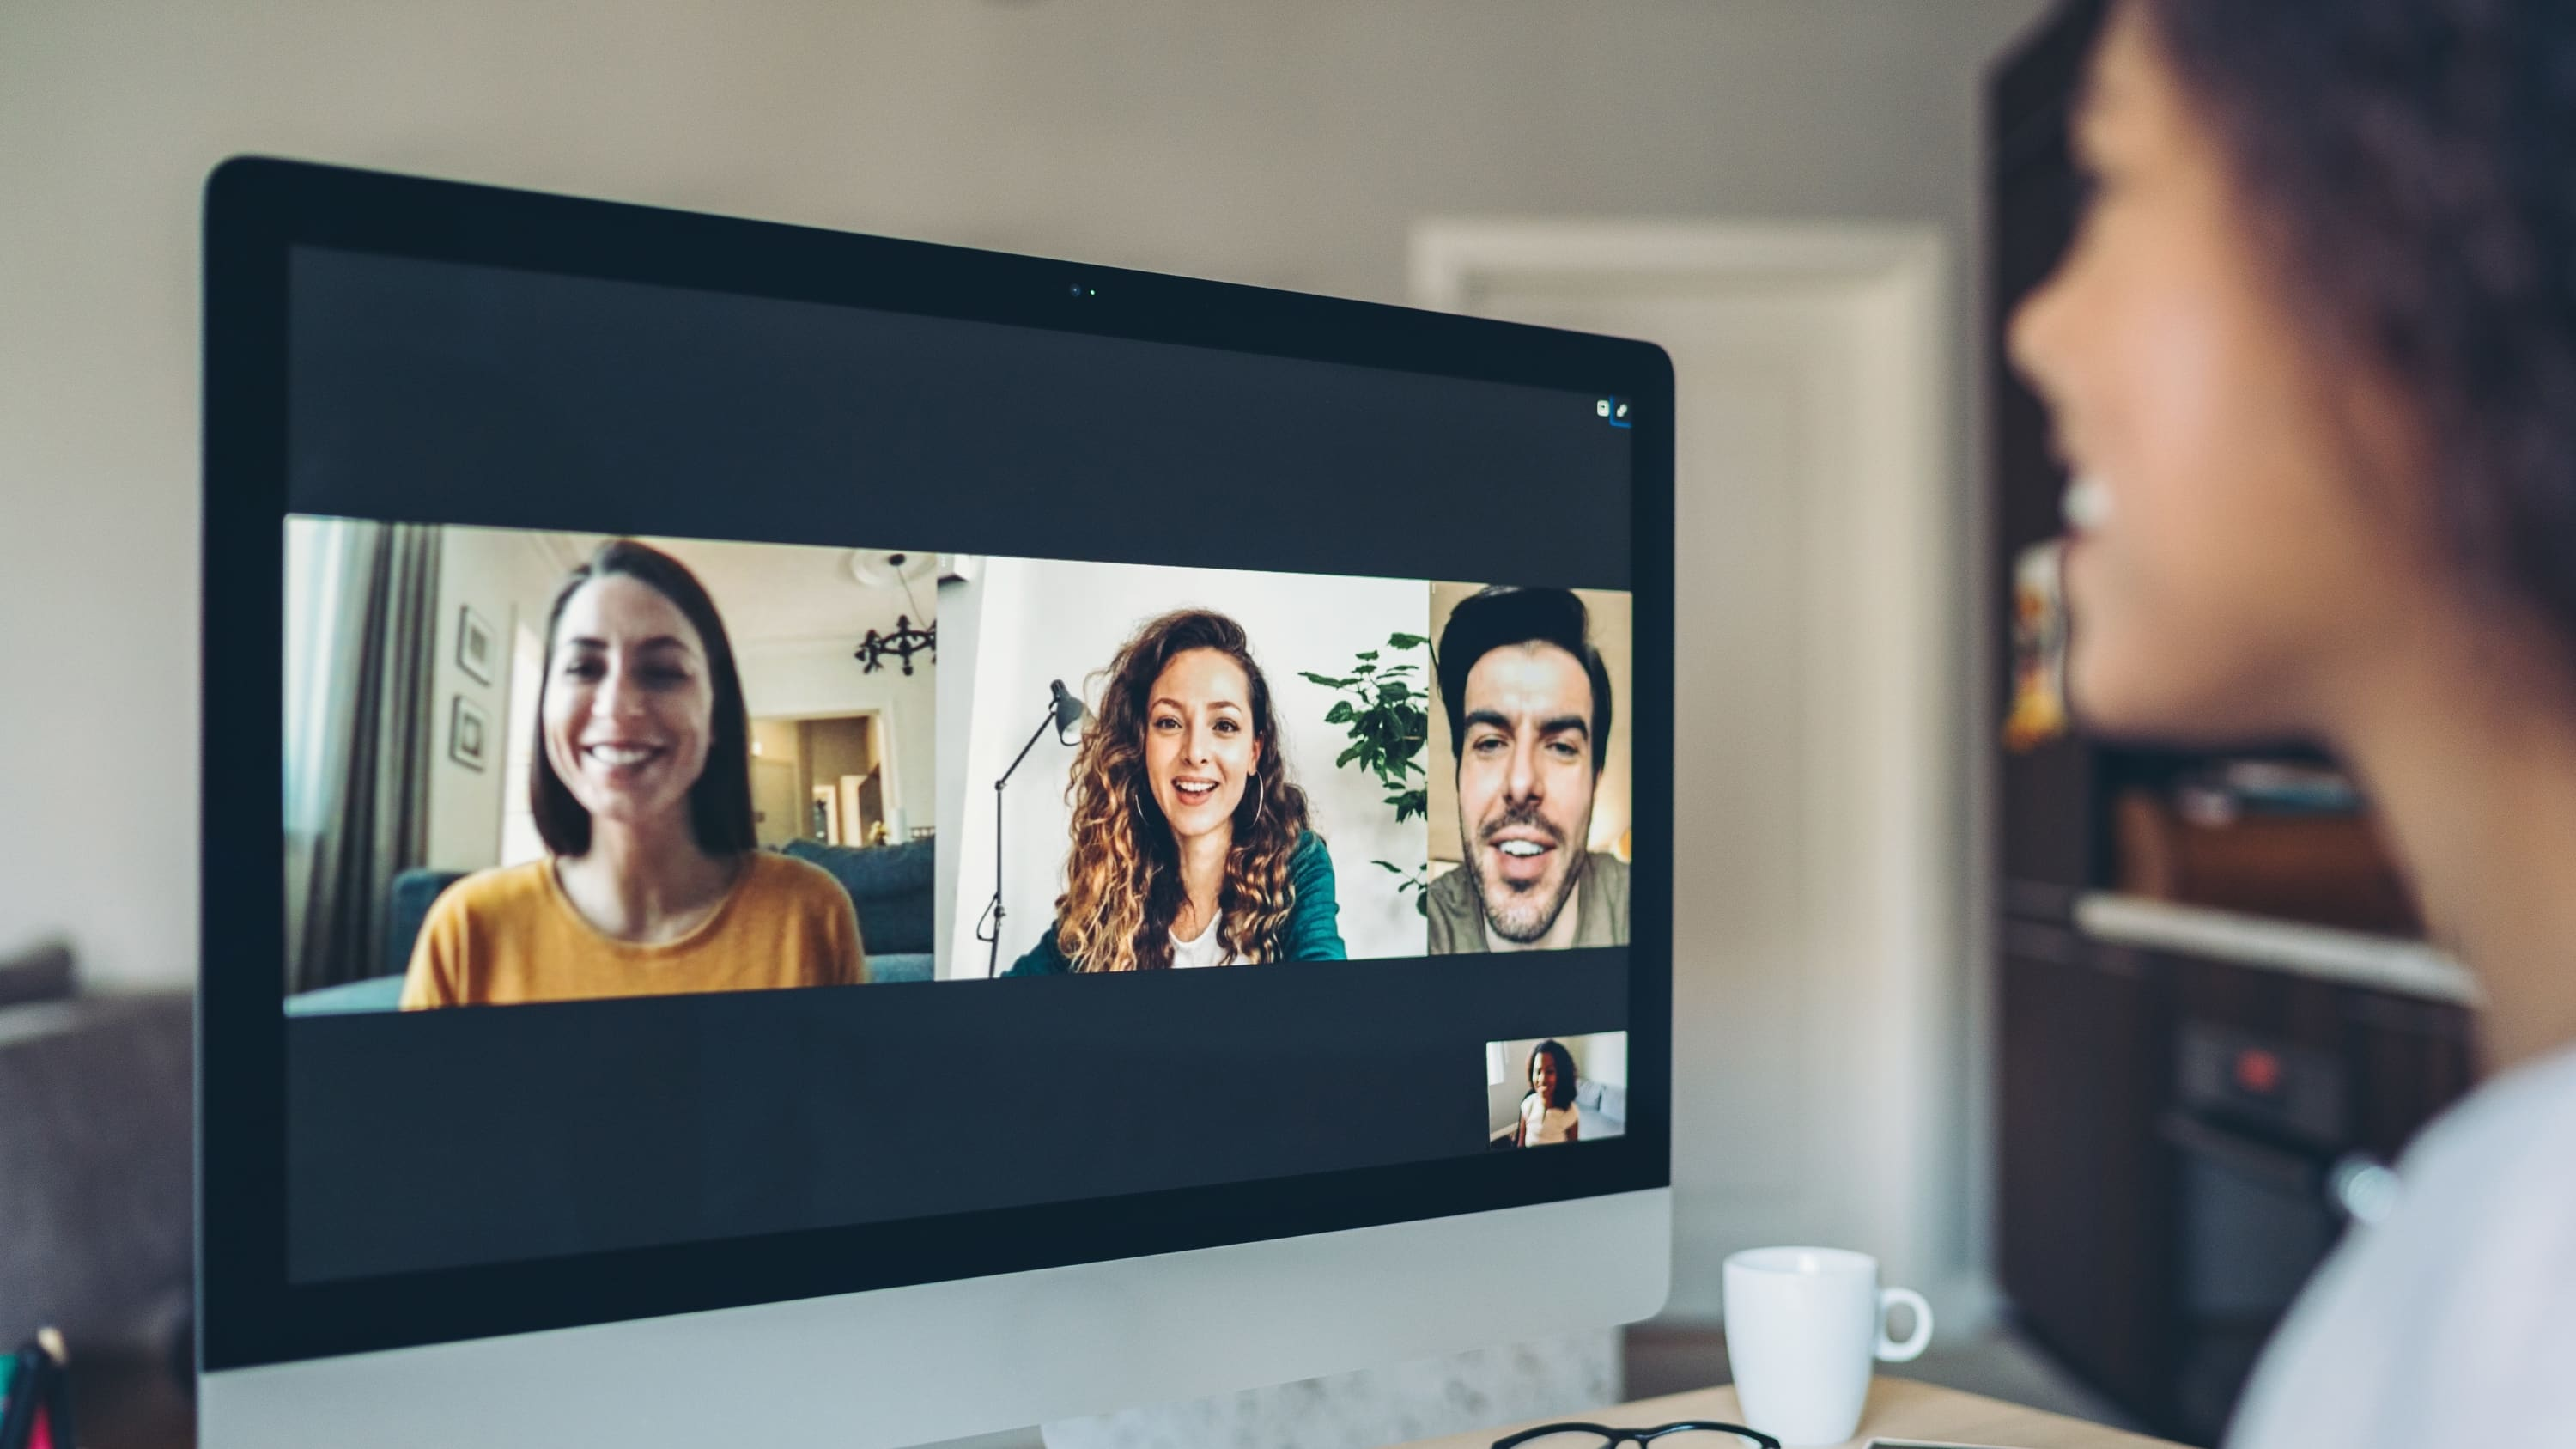 Several people chatting through a video call, highlighting the increased attention on cosmetic procedures such as botox and facelifts